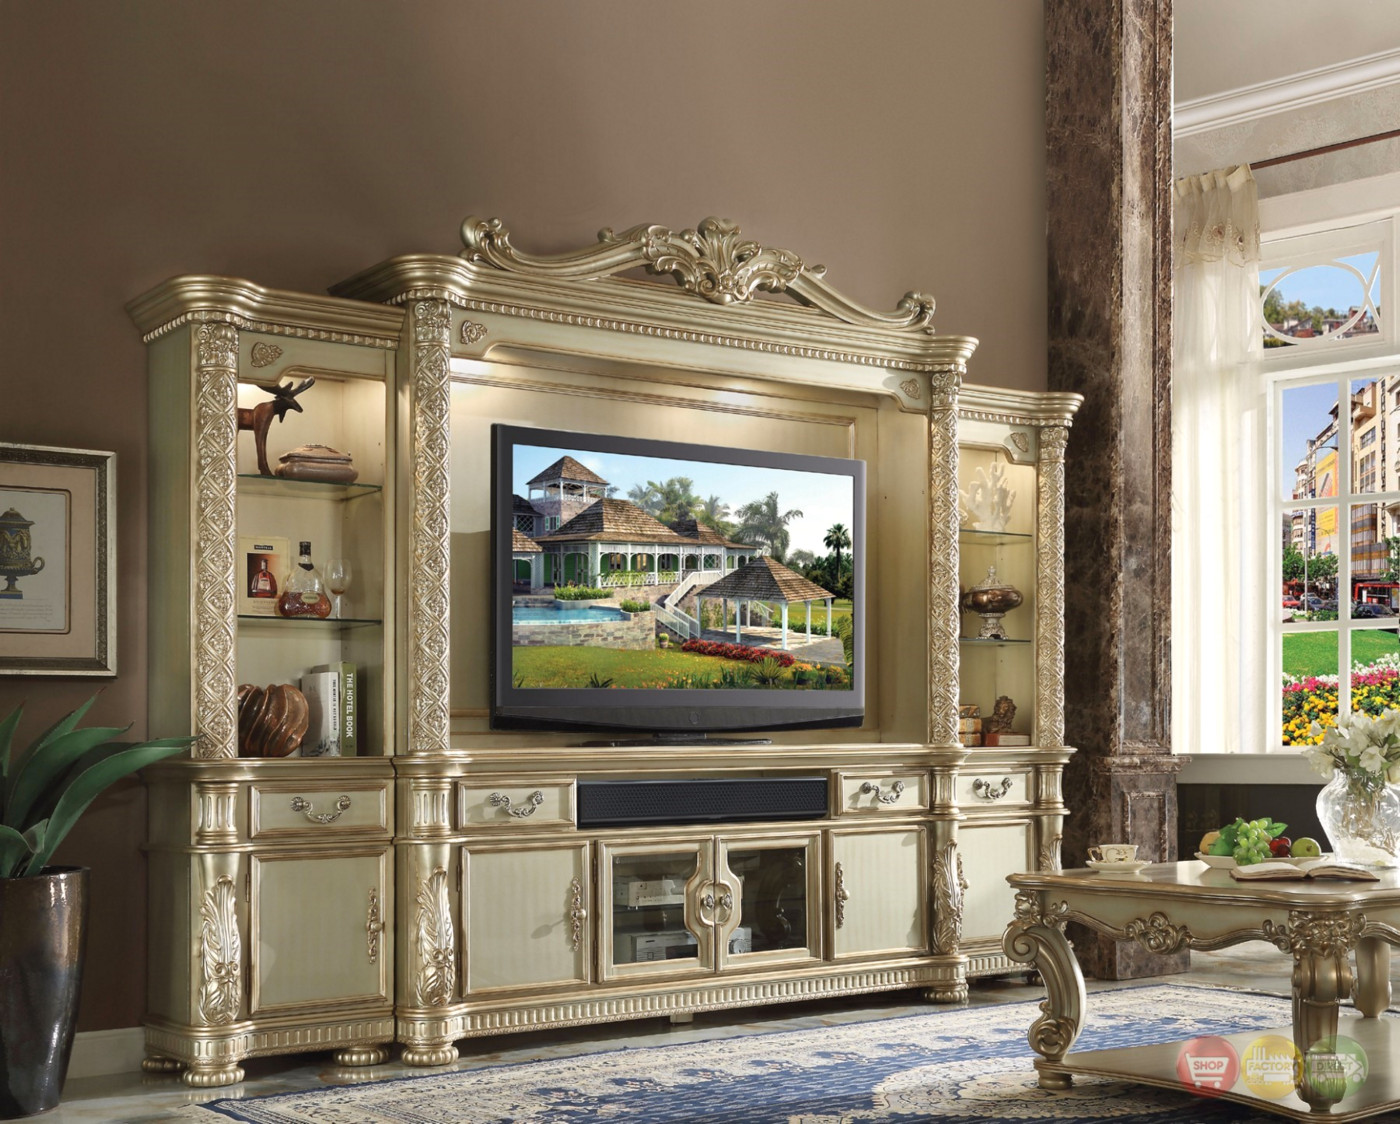 Vendome Ii Ornate 80 Quot Entertainment Wall Unit In